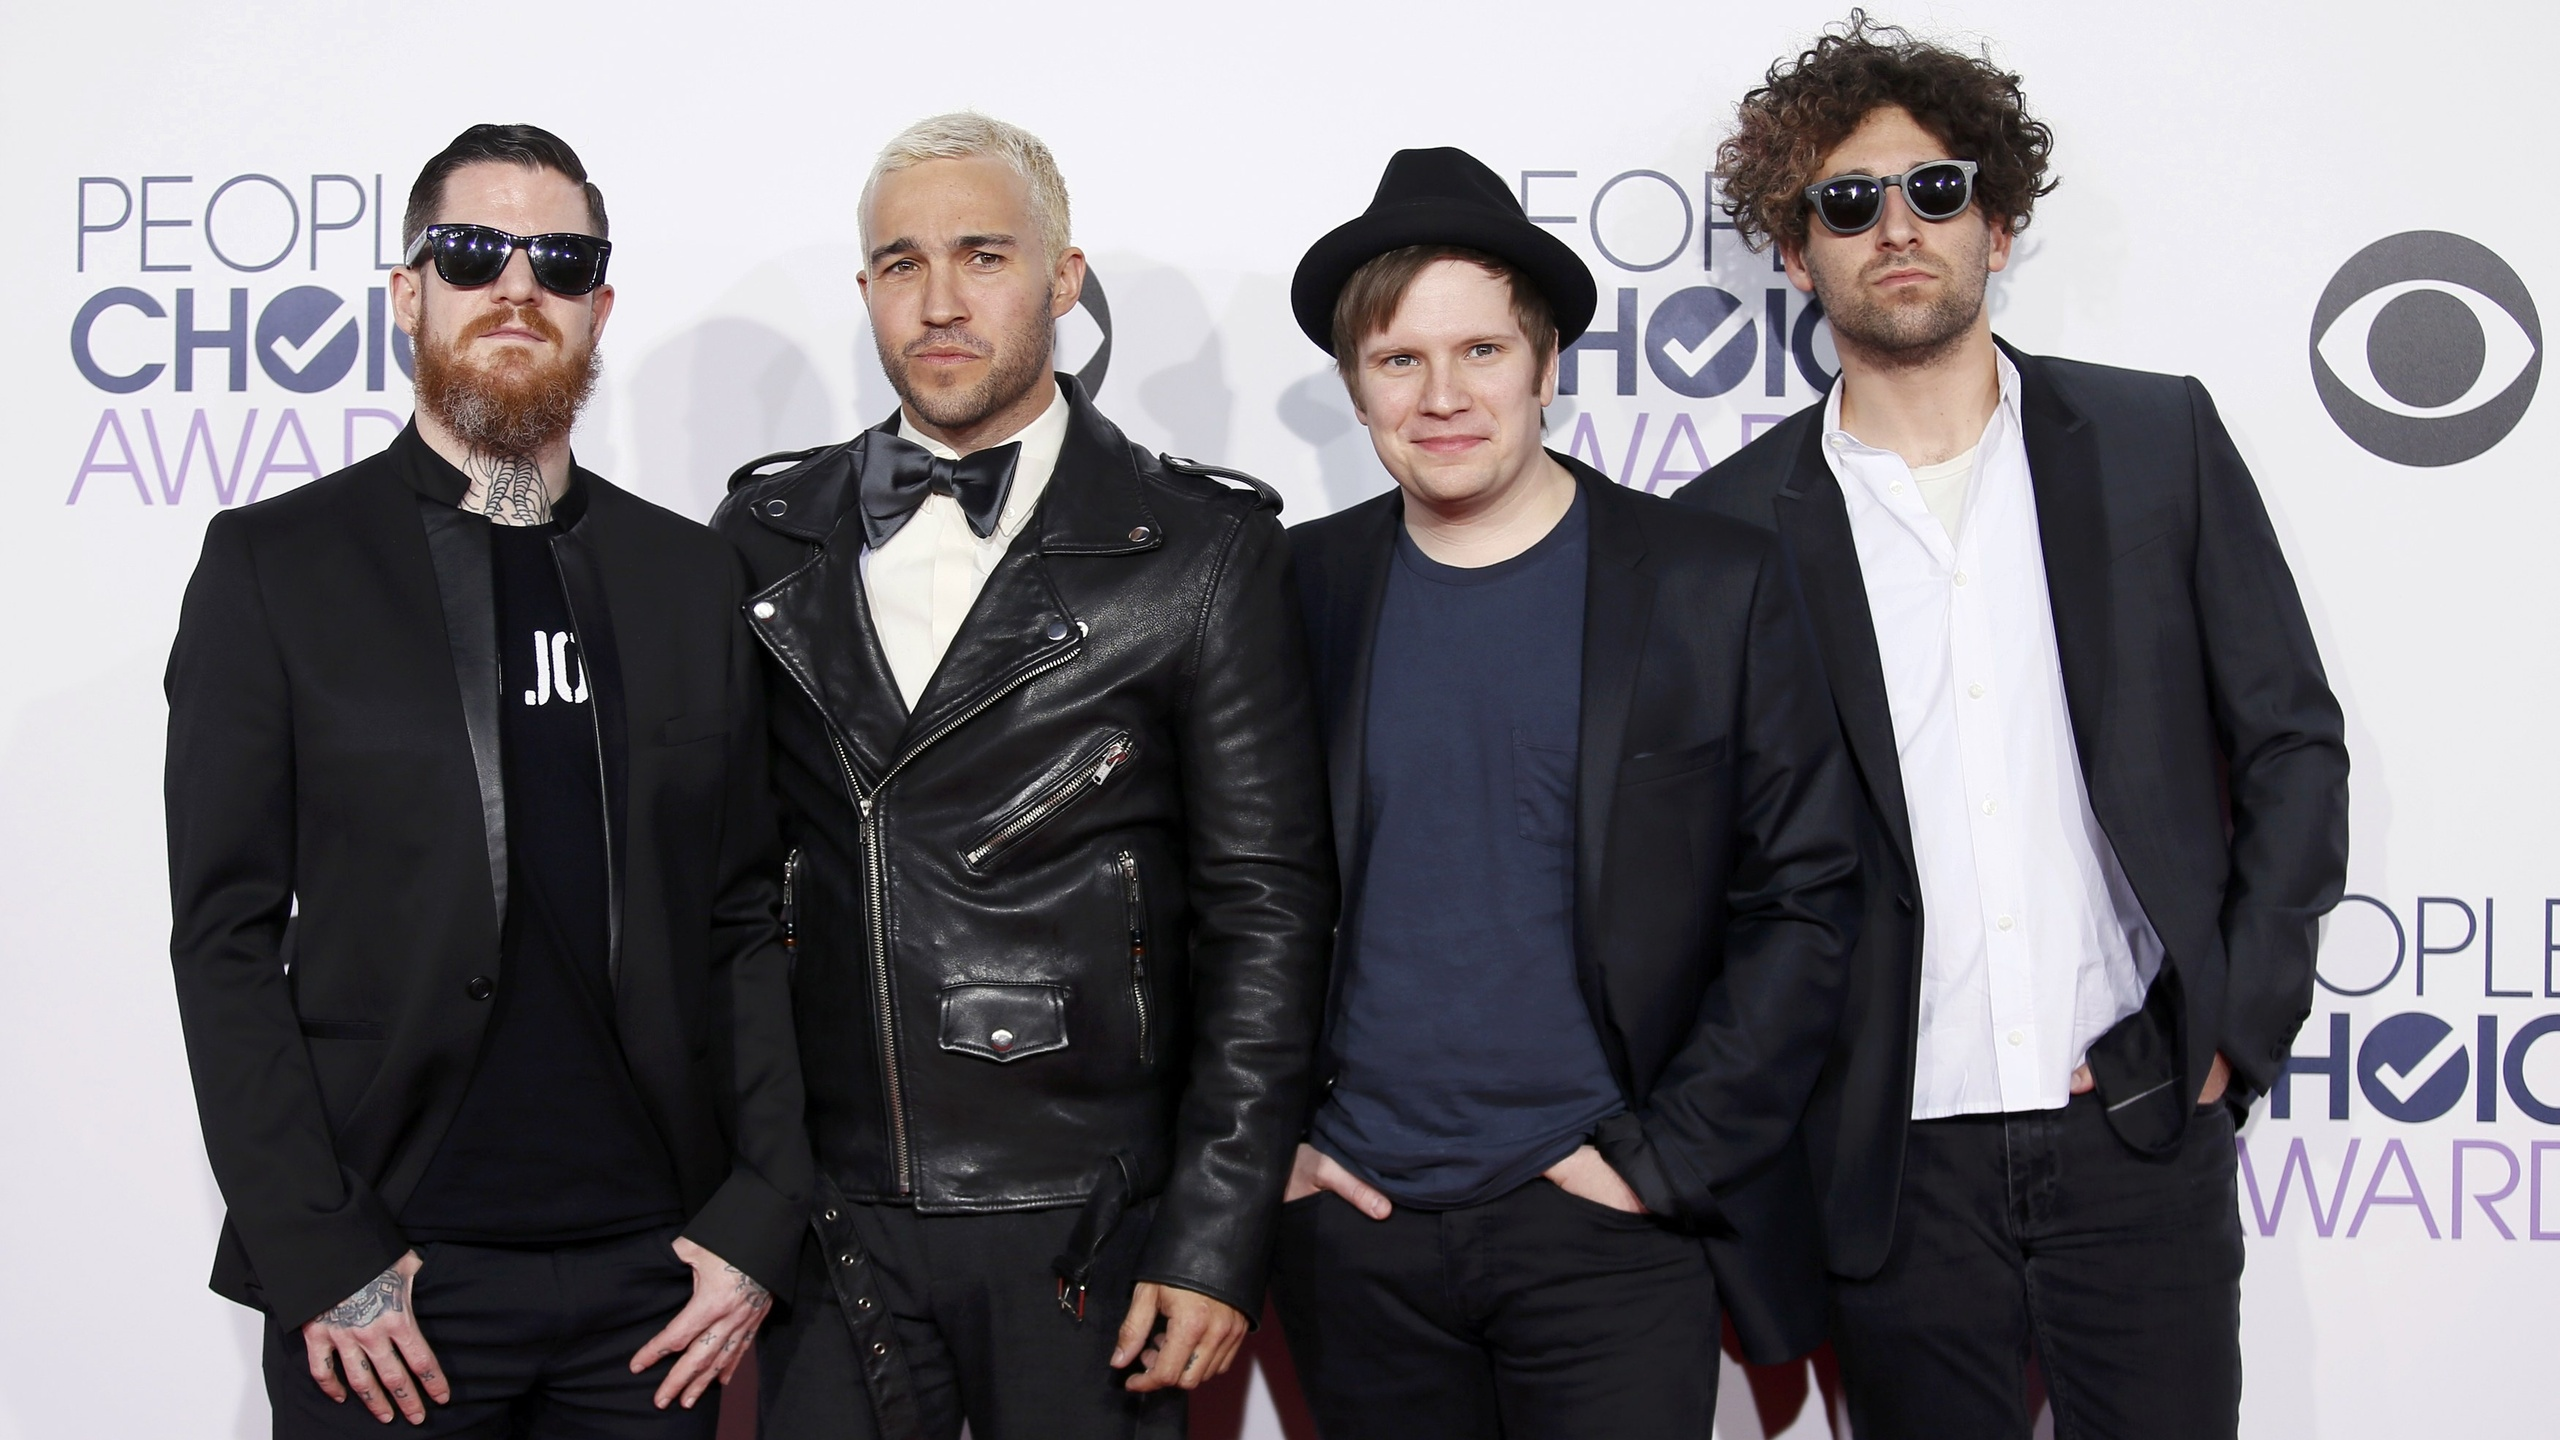 Fall Out Boy 2015 Patrick 1050311 Hd Wallpaper Backgrounds